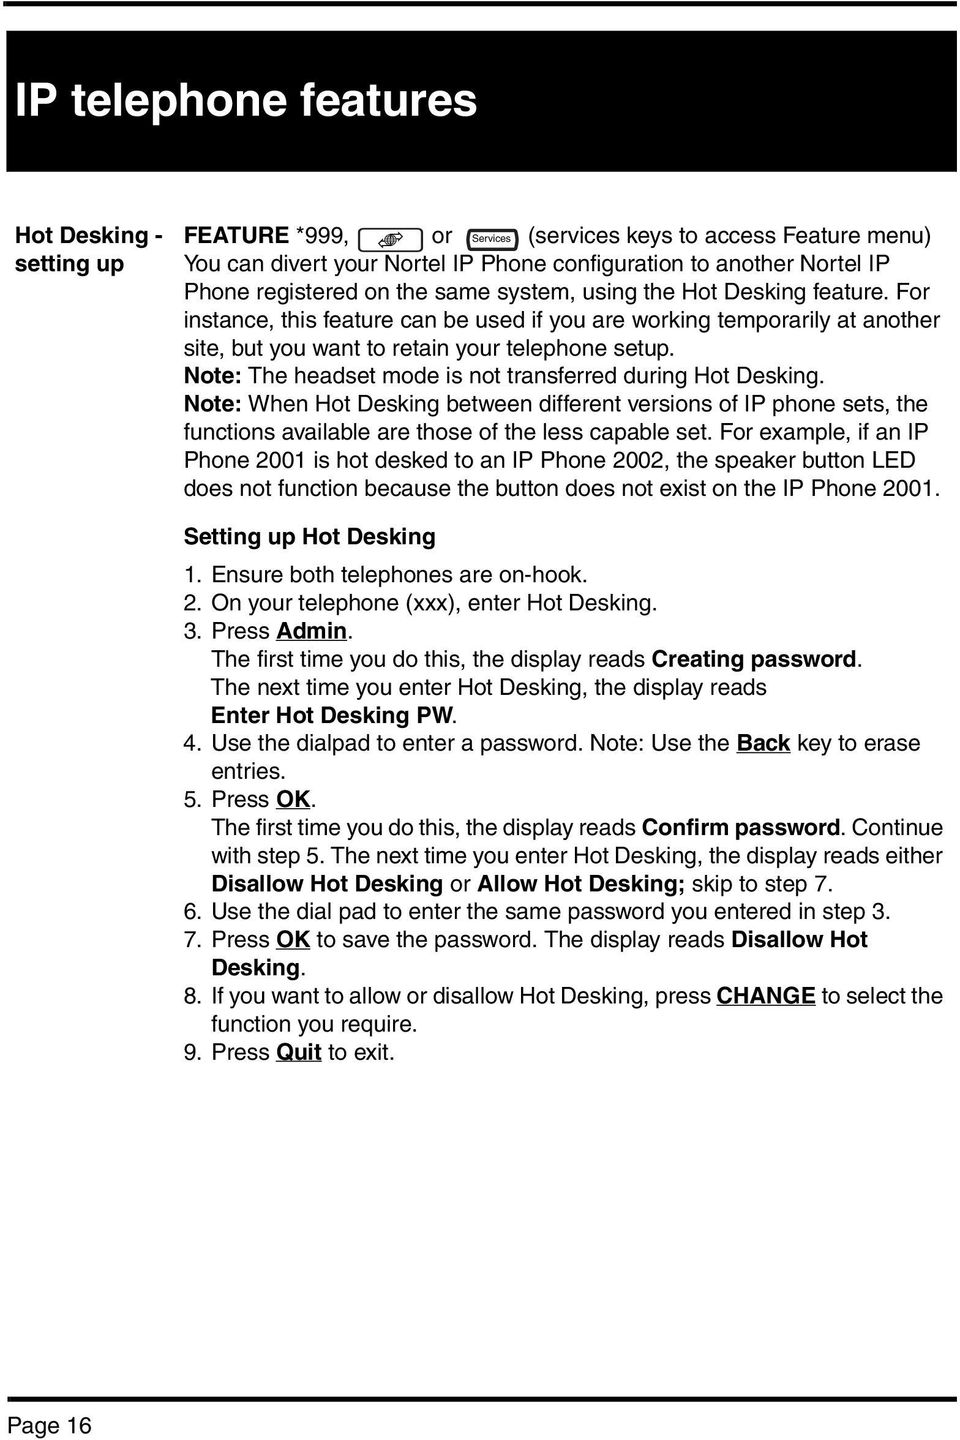 Note: The headset mode is not transferred during Hot Desking. Note: When Hot Desking between different versions of IP phone sets, the functions available are those of the less capable set.